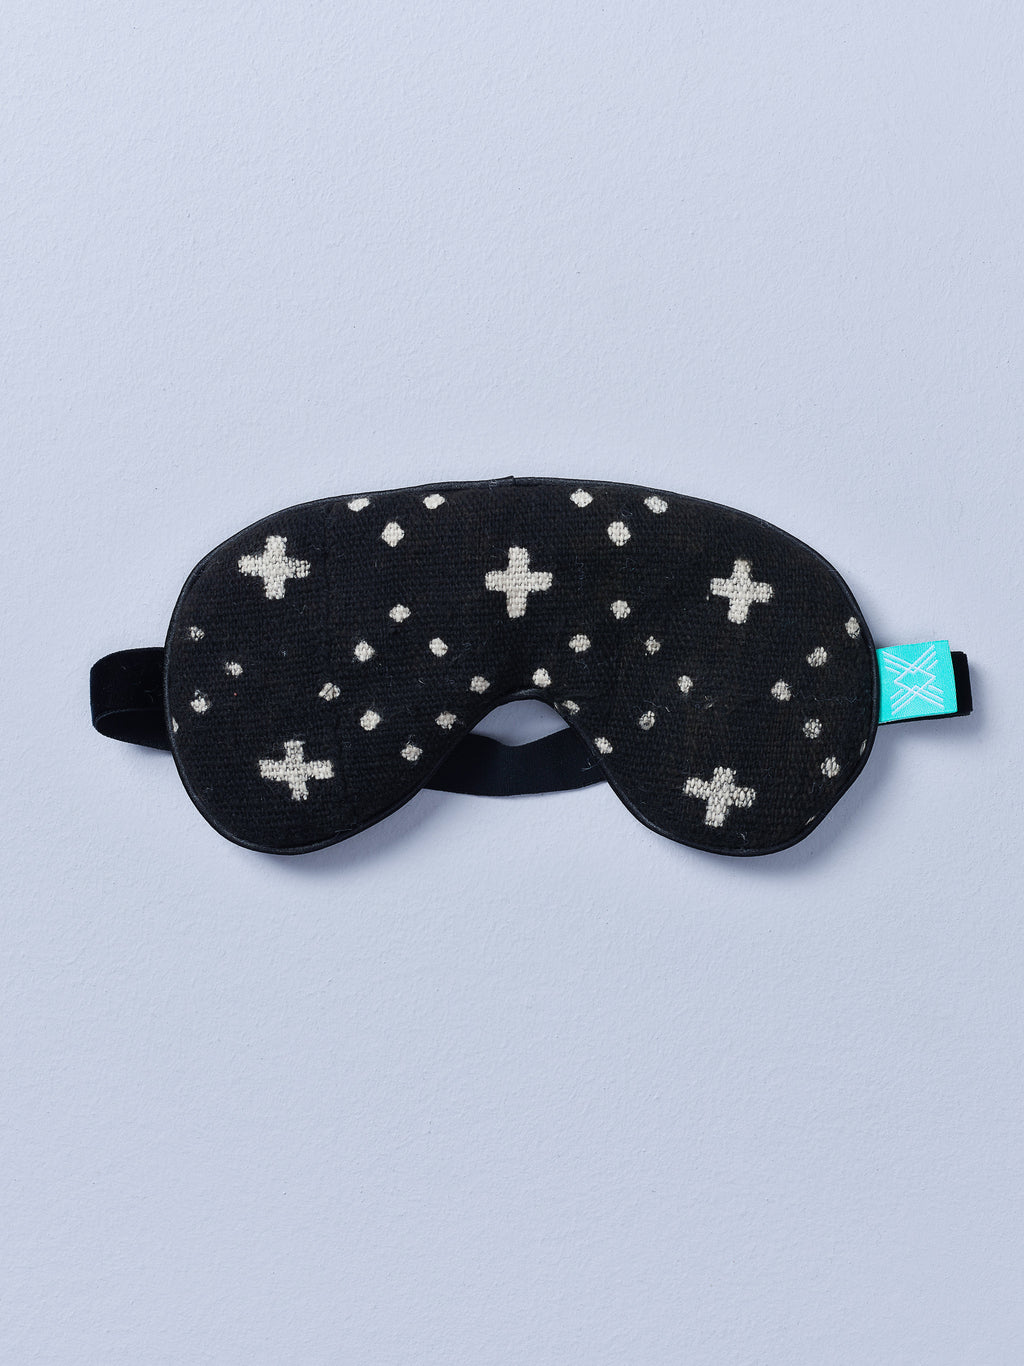 Black Mudcloth Eye Mask with Lavender